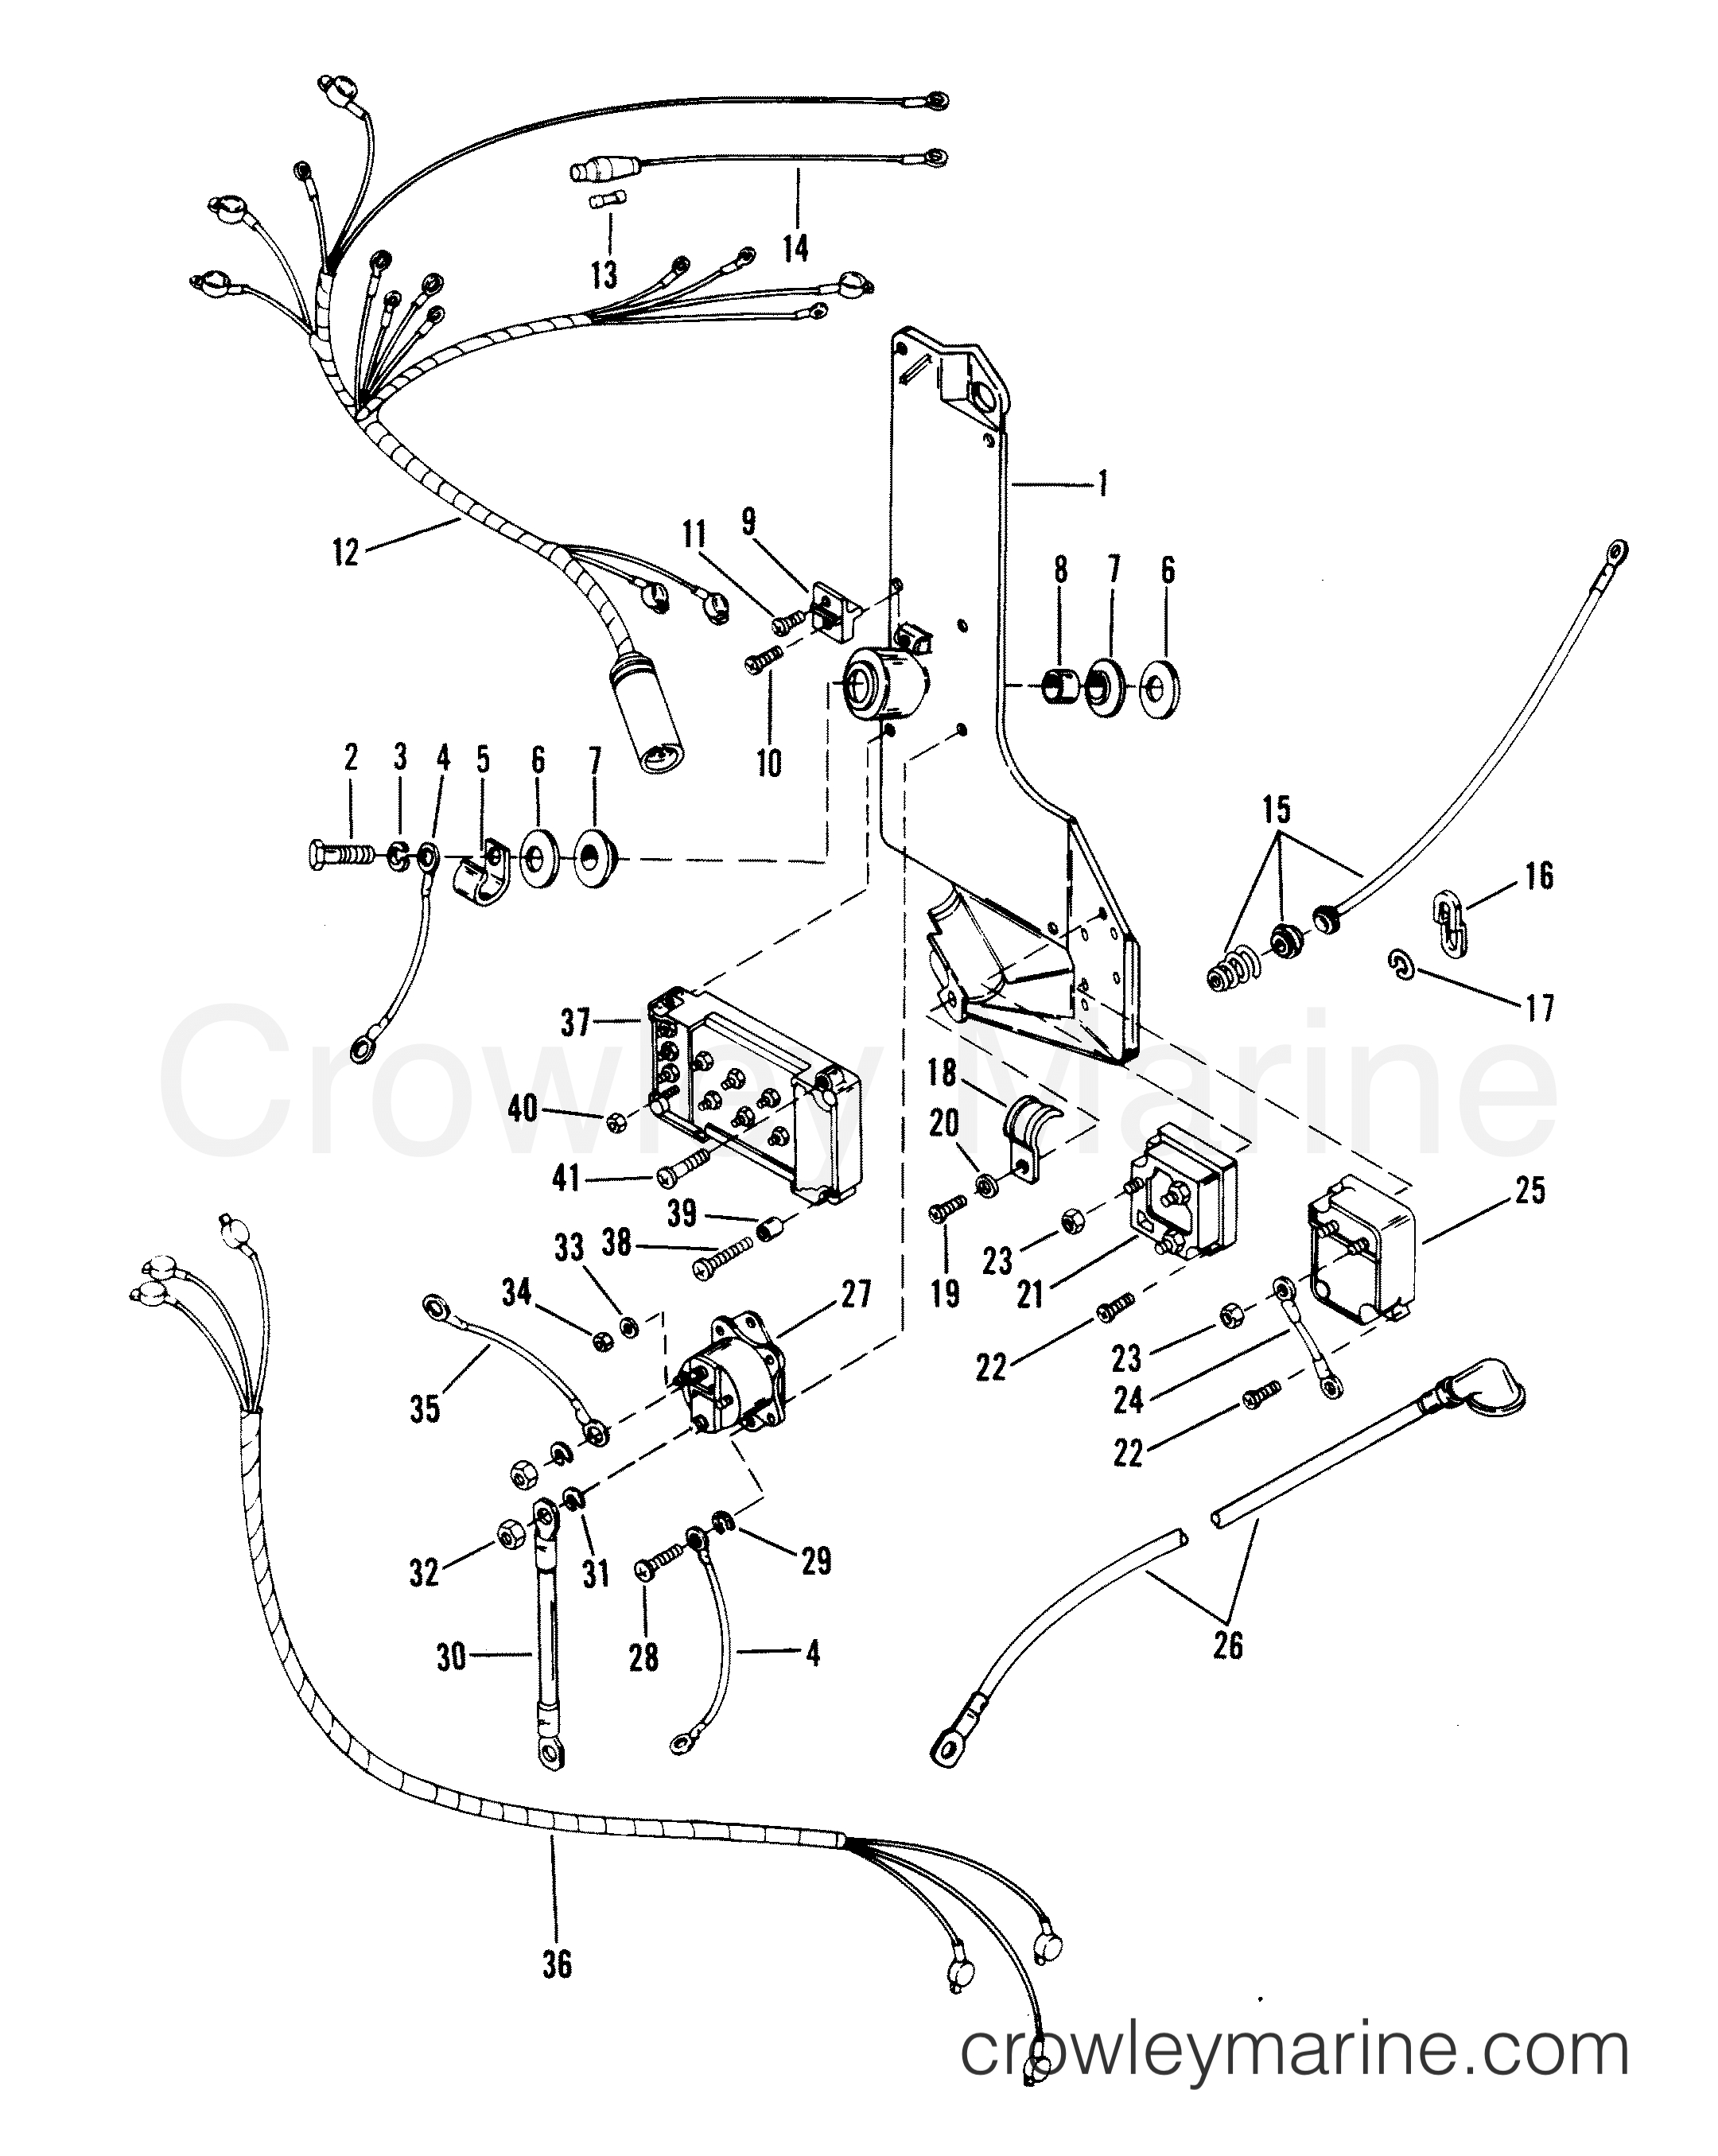 Wiring Harness, Starter Solenoid And Rectifier - Serial Range - Mercury Outboard Rectifier Wiring Diagram